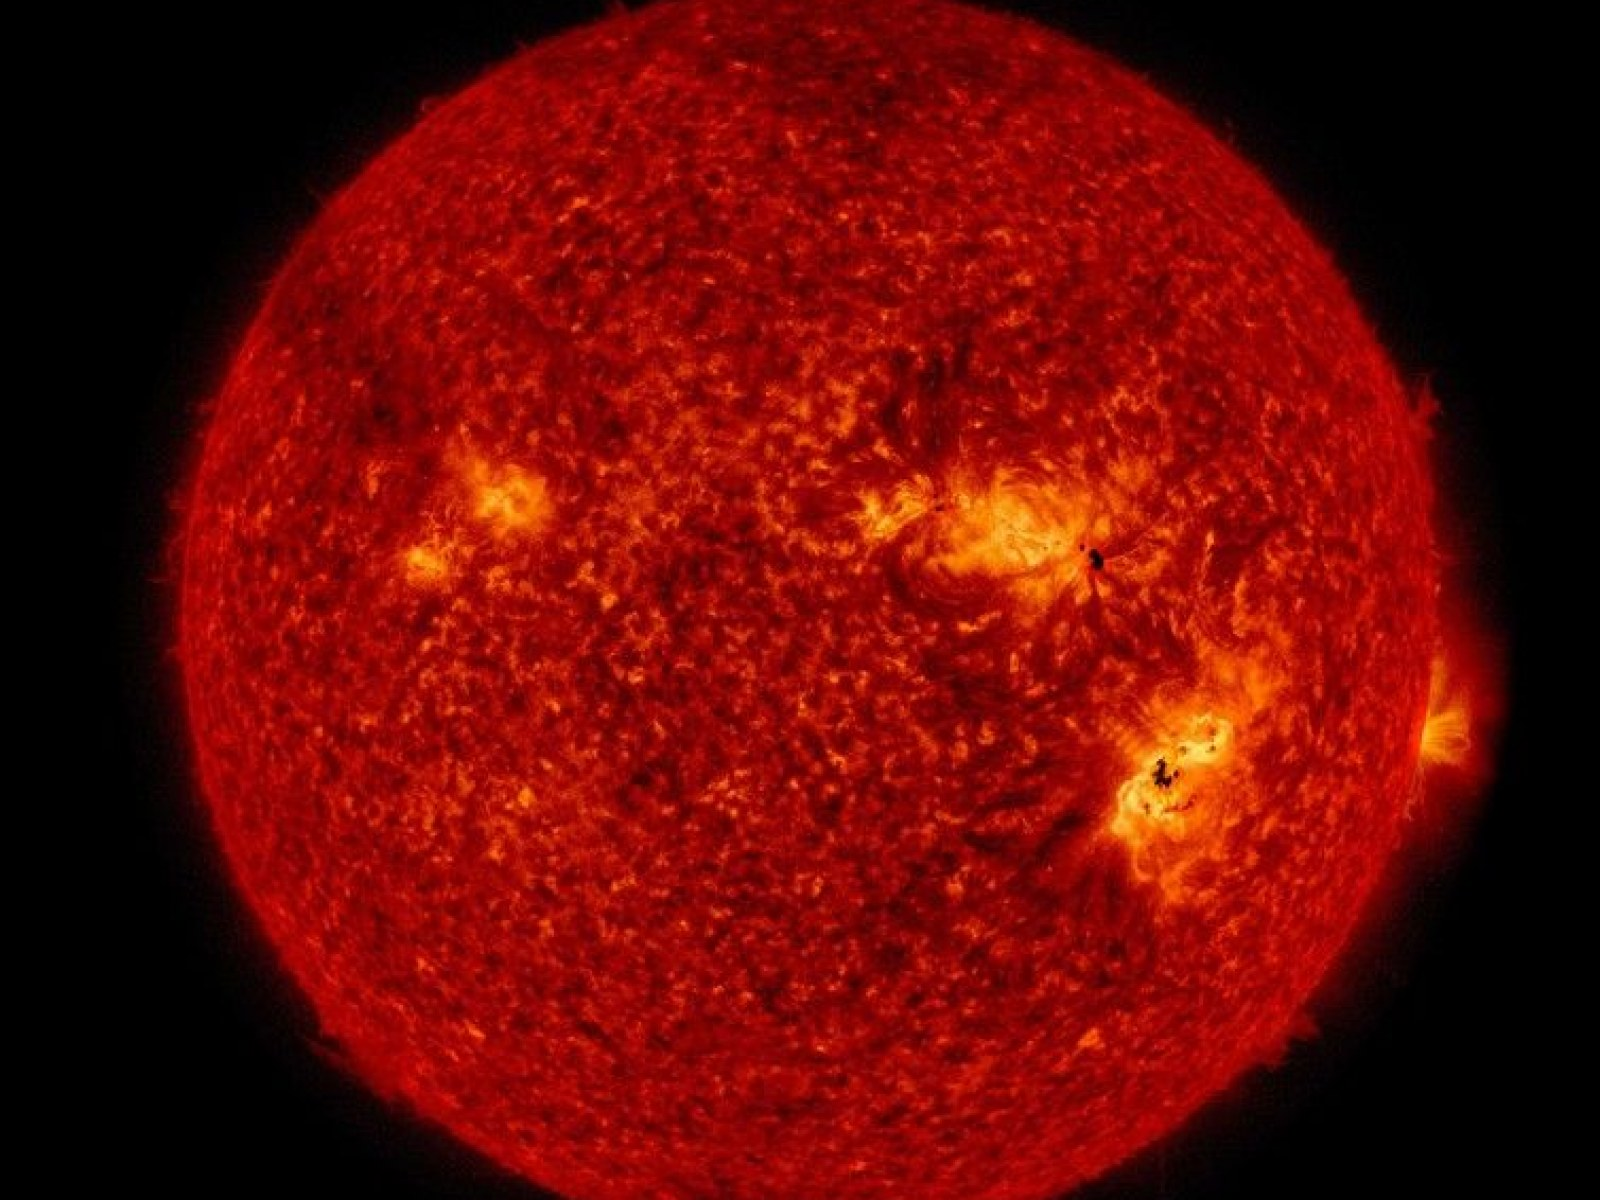 Massive Sunspots and Solar Flares: The Sun Has Gone Wrong